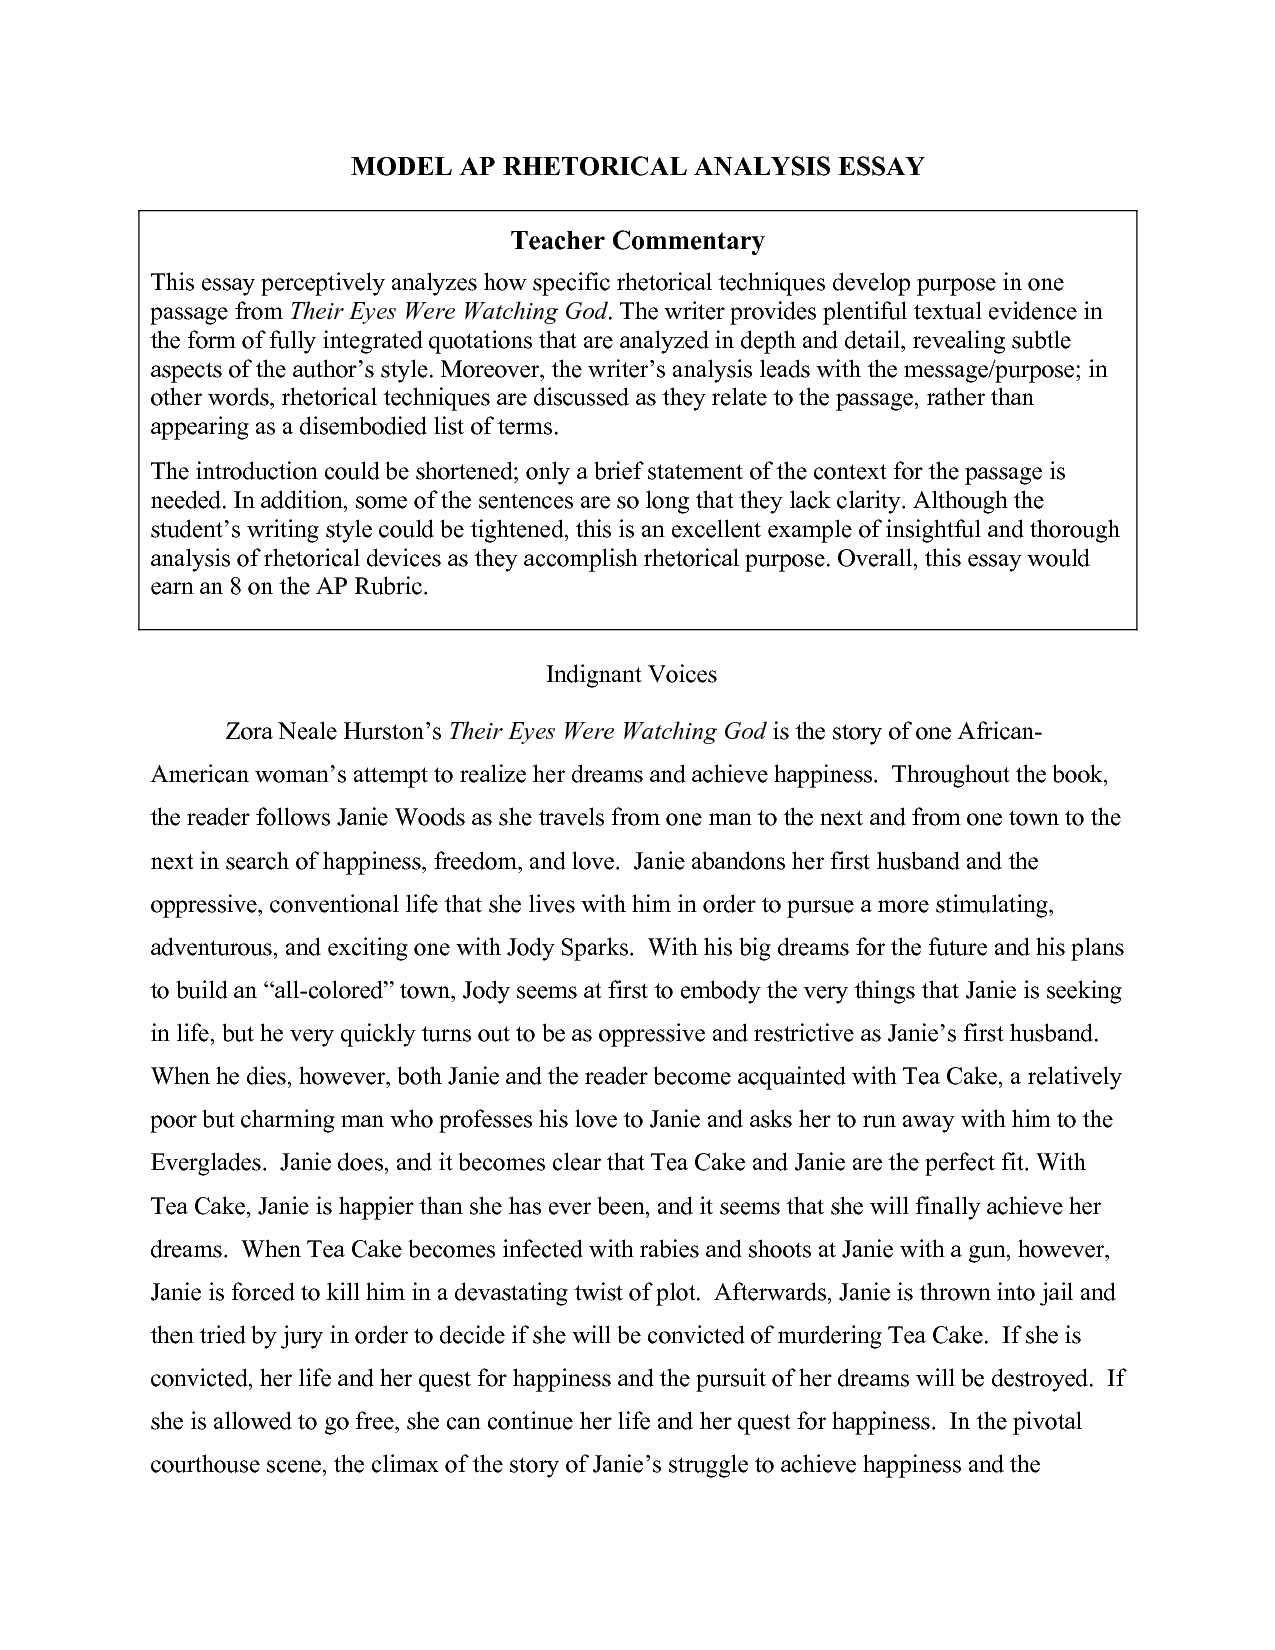 Writing a text response essay: notes, tips and sample paras